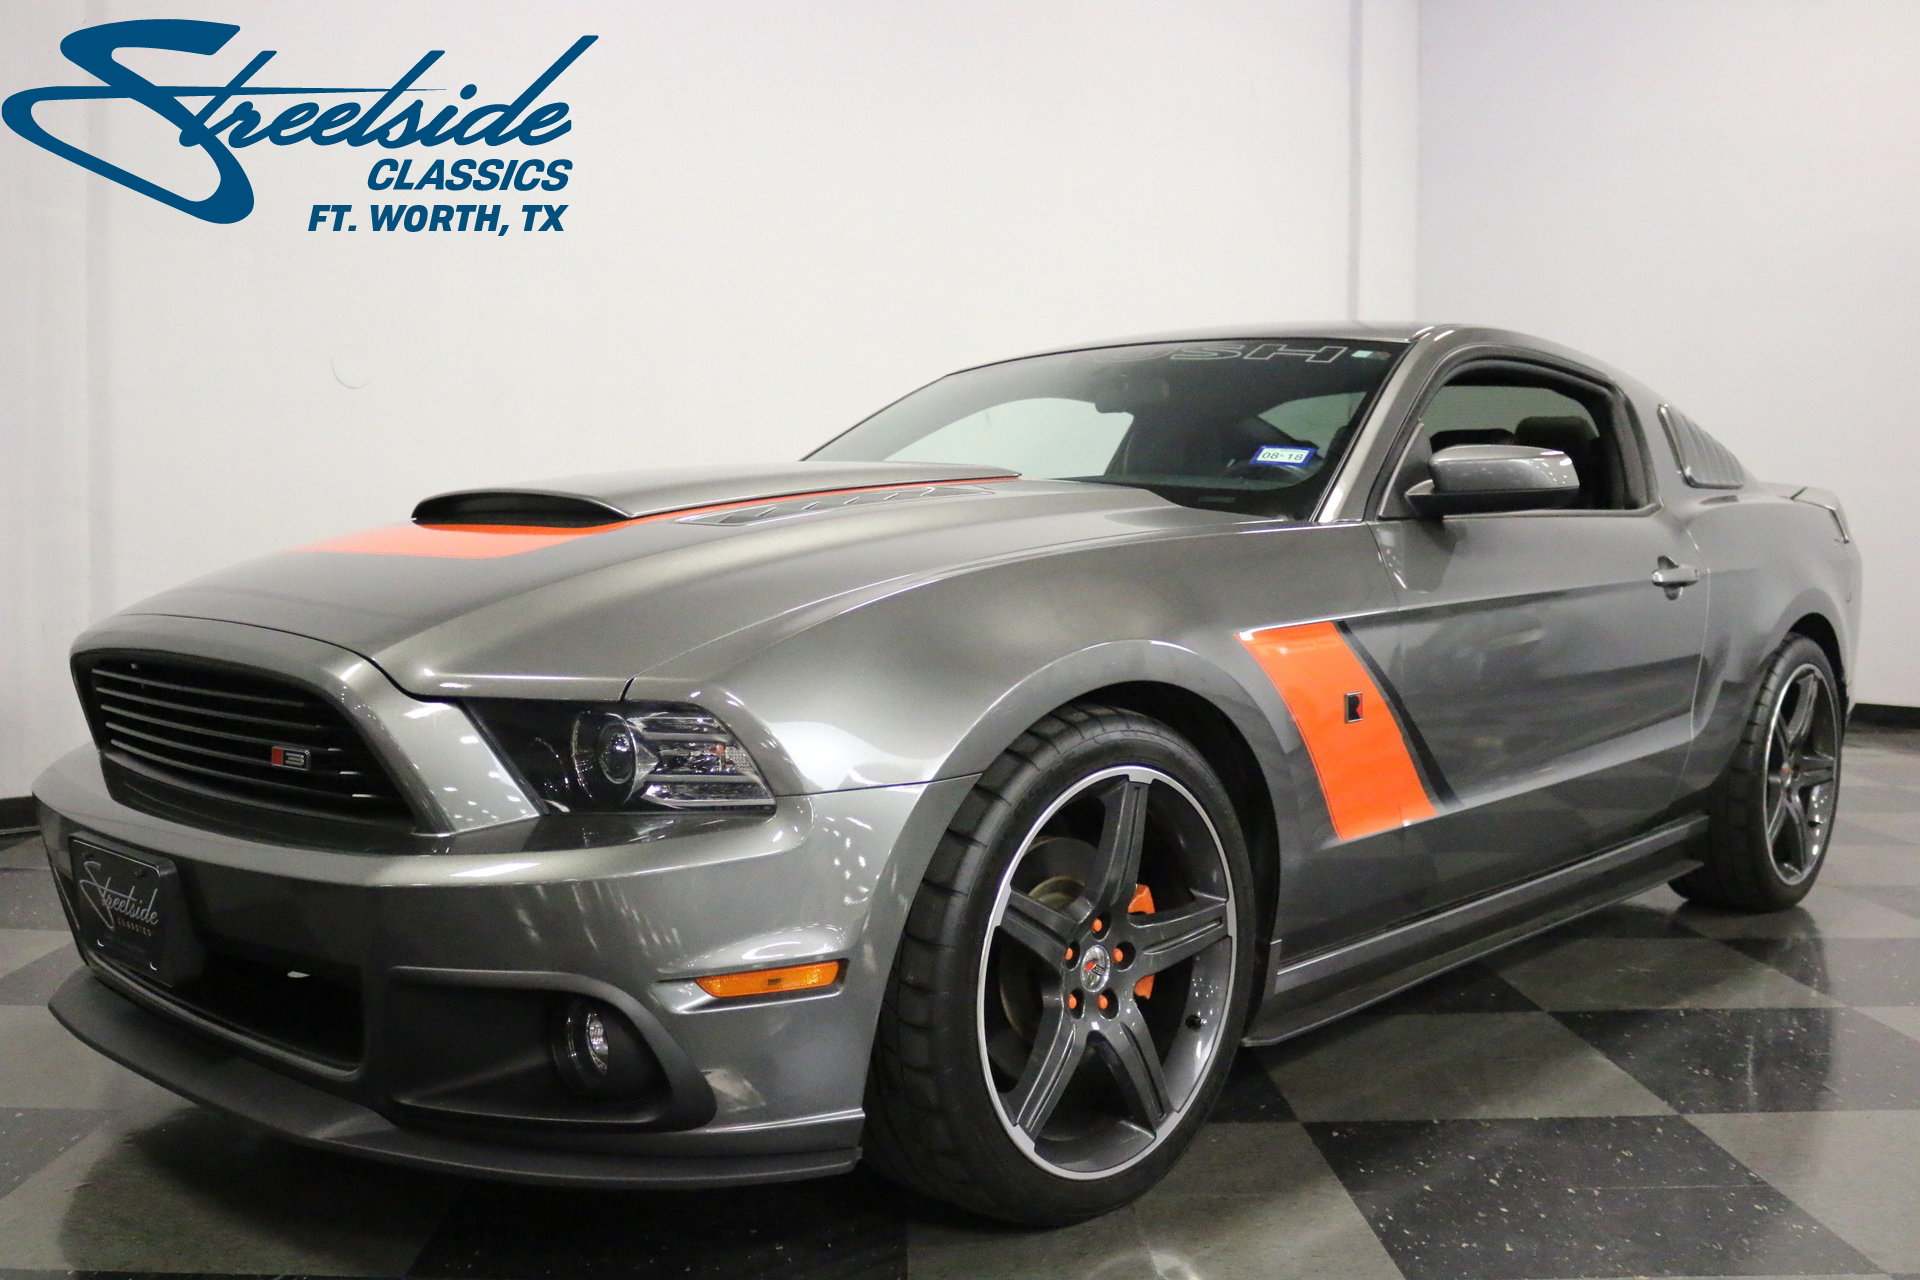 2014 ford mustang streetside classics the nation 39 s trusted classic car consignment dealer. Black Bedroom Furniture Sets. Home Design Ideas